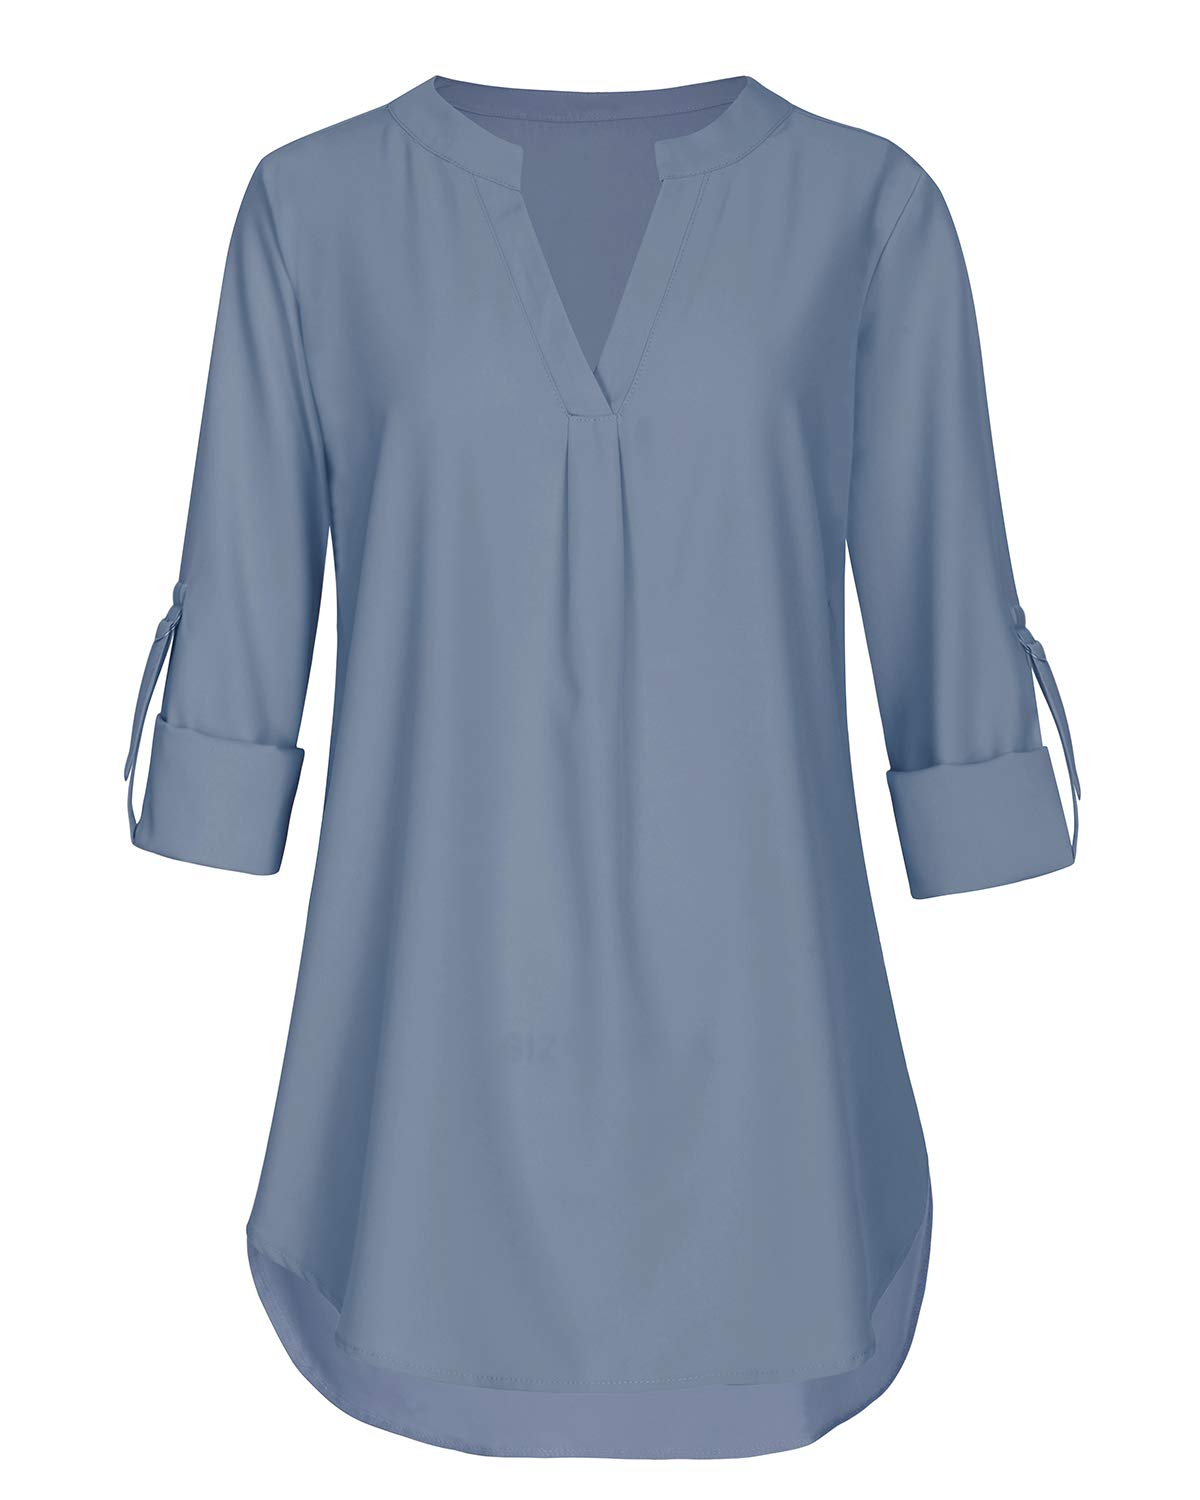 Aliling Business Casual Tops for Women, Ladies 3/4 Cuffed Sleeve V Neck Pleats Fitted Tunic (Blue, Large)